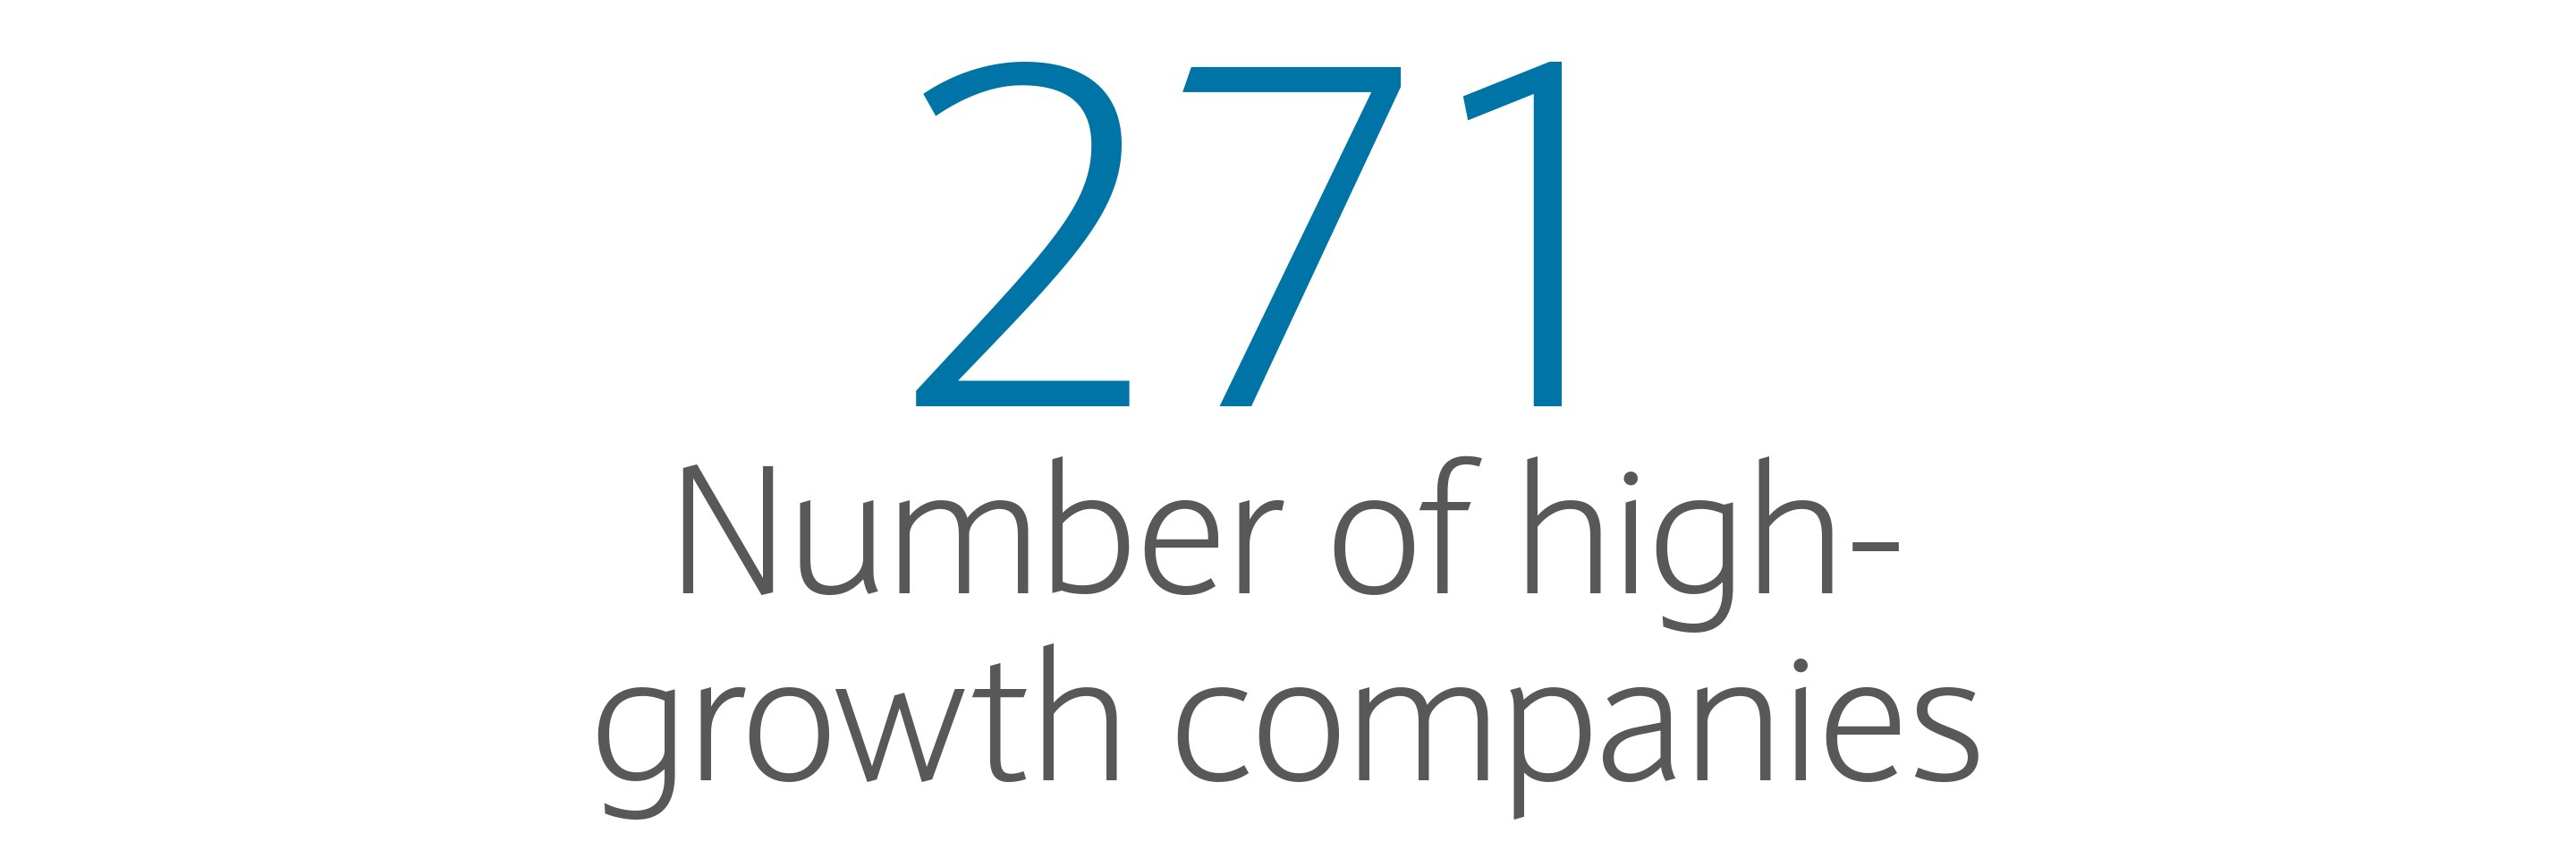 271: Number of high-growth companies